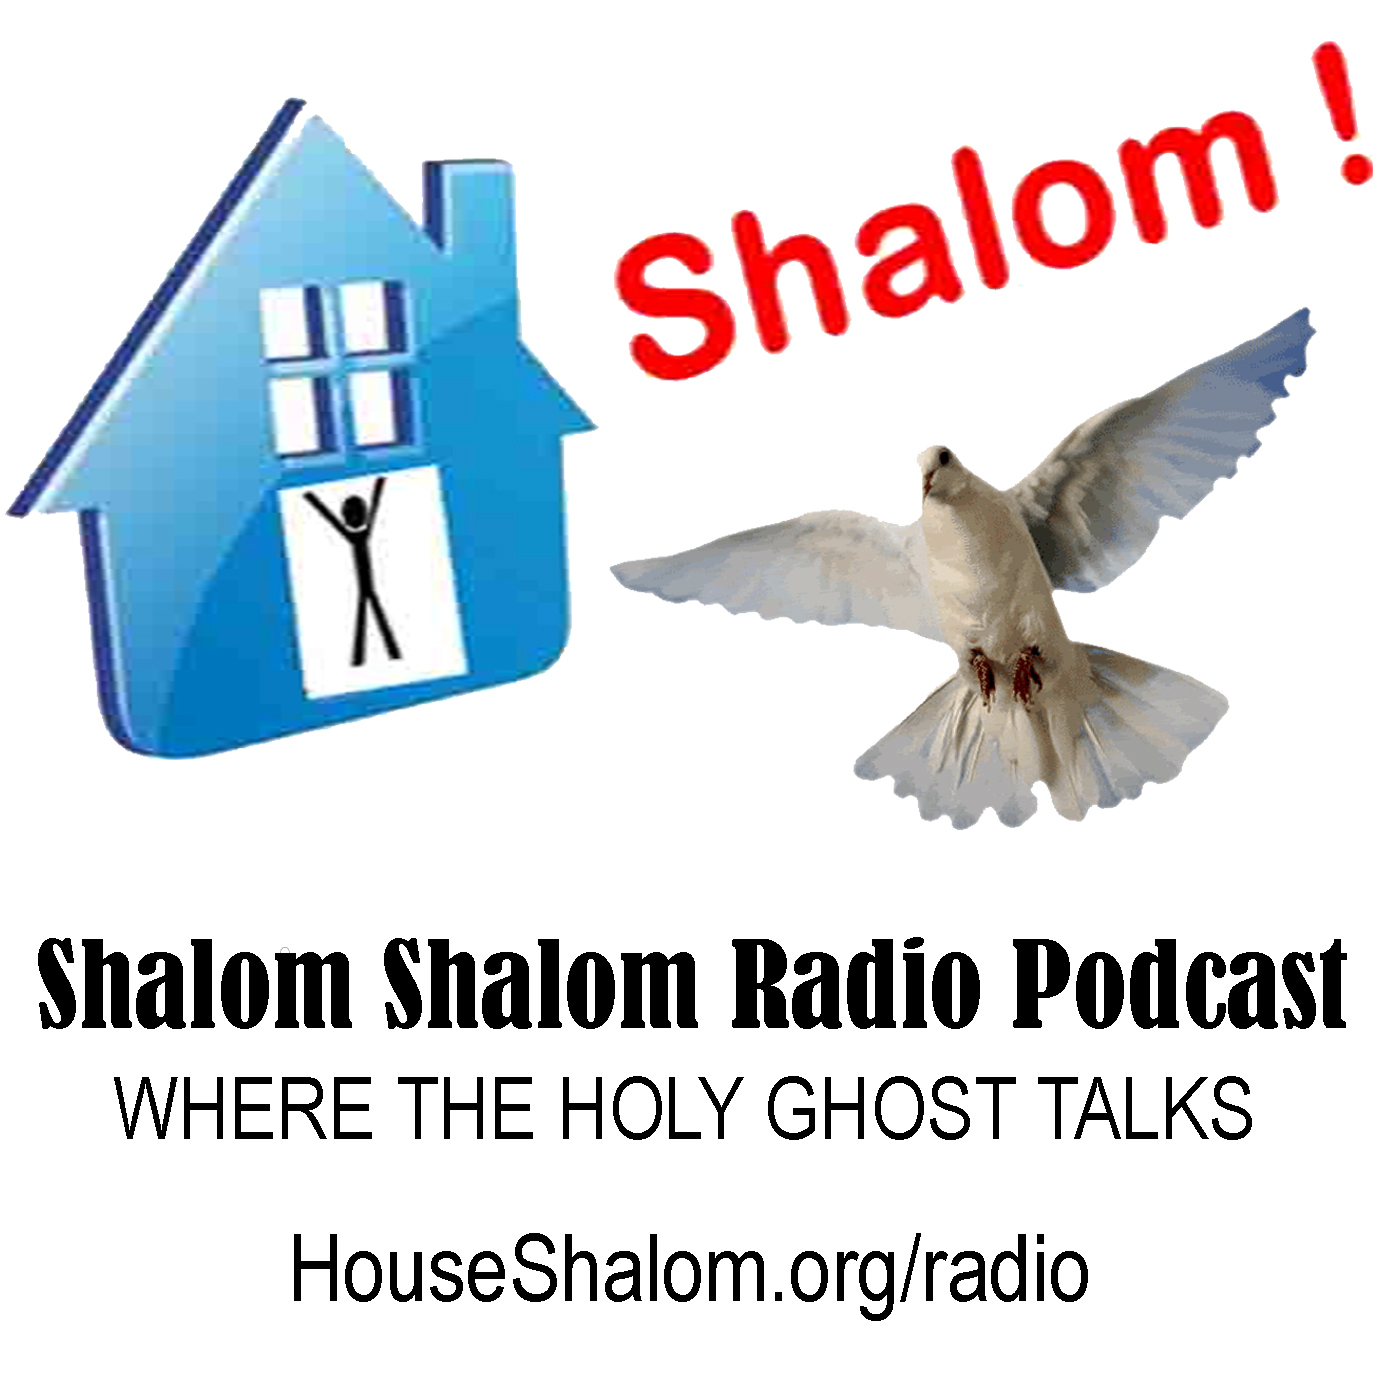 Shalom Shalom Radio Podcast